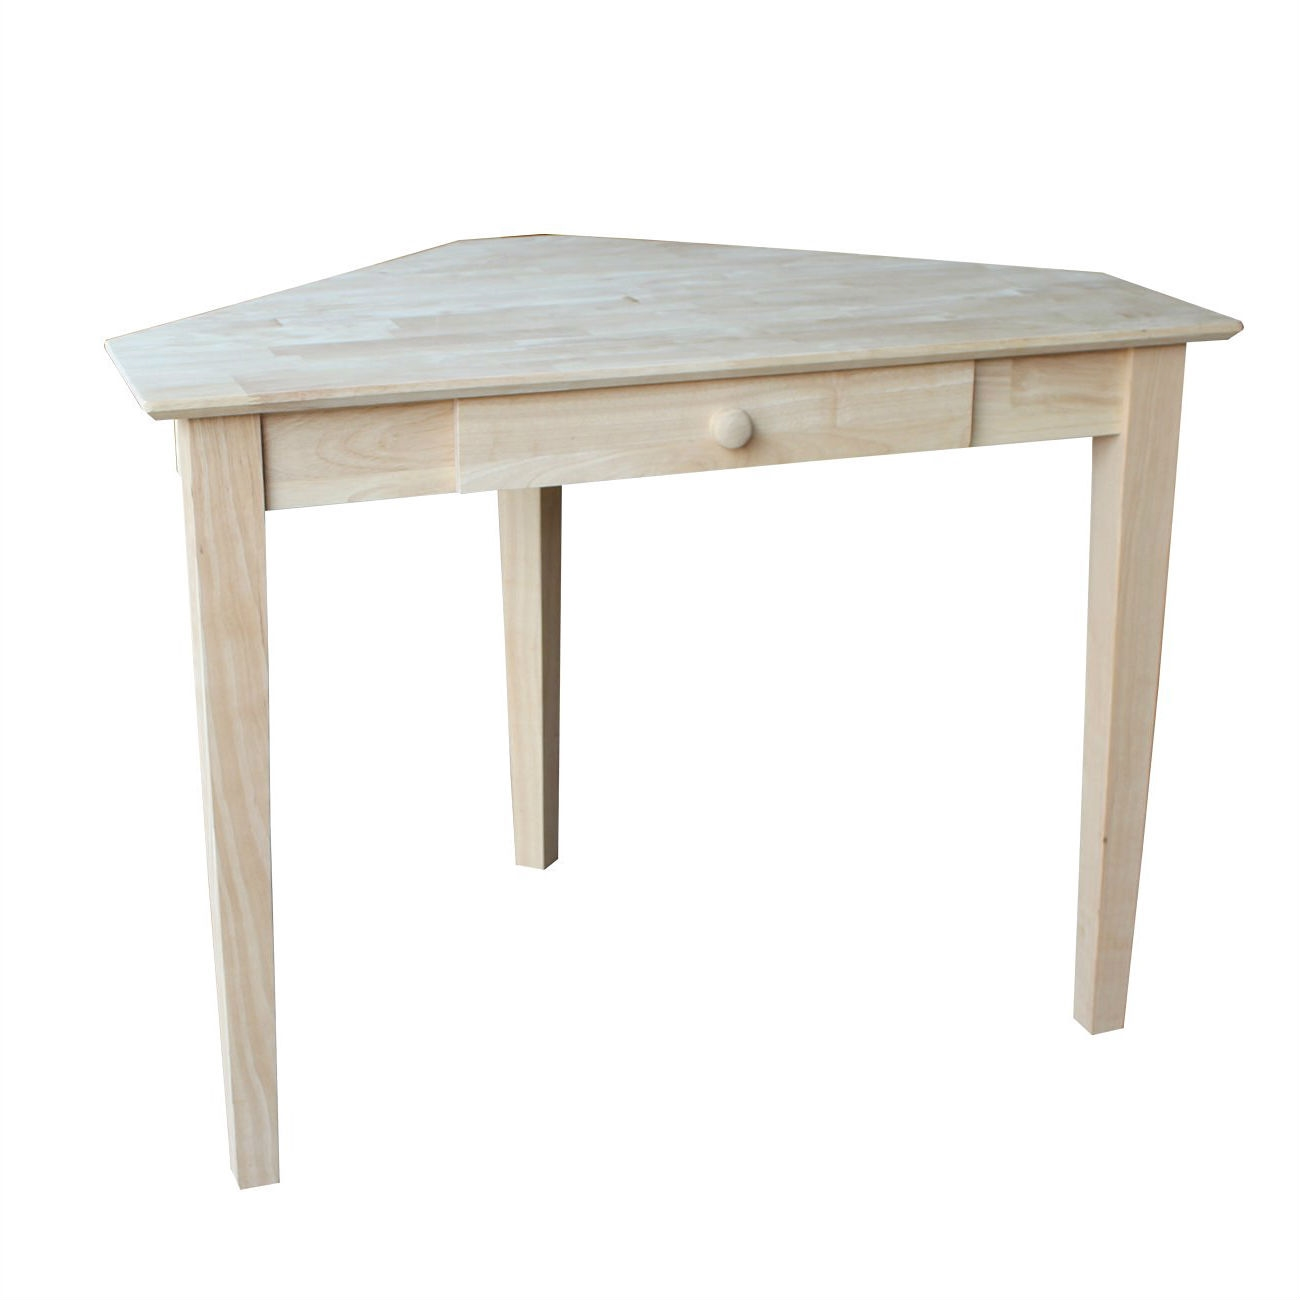 Table Unfinished Wood Unfinished Wood Corner Desk Laptop Computer Writing Table With Drawer